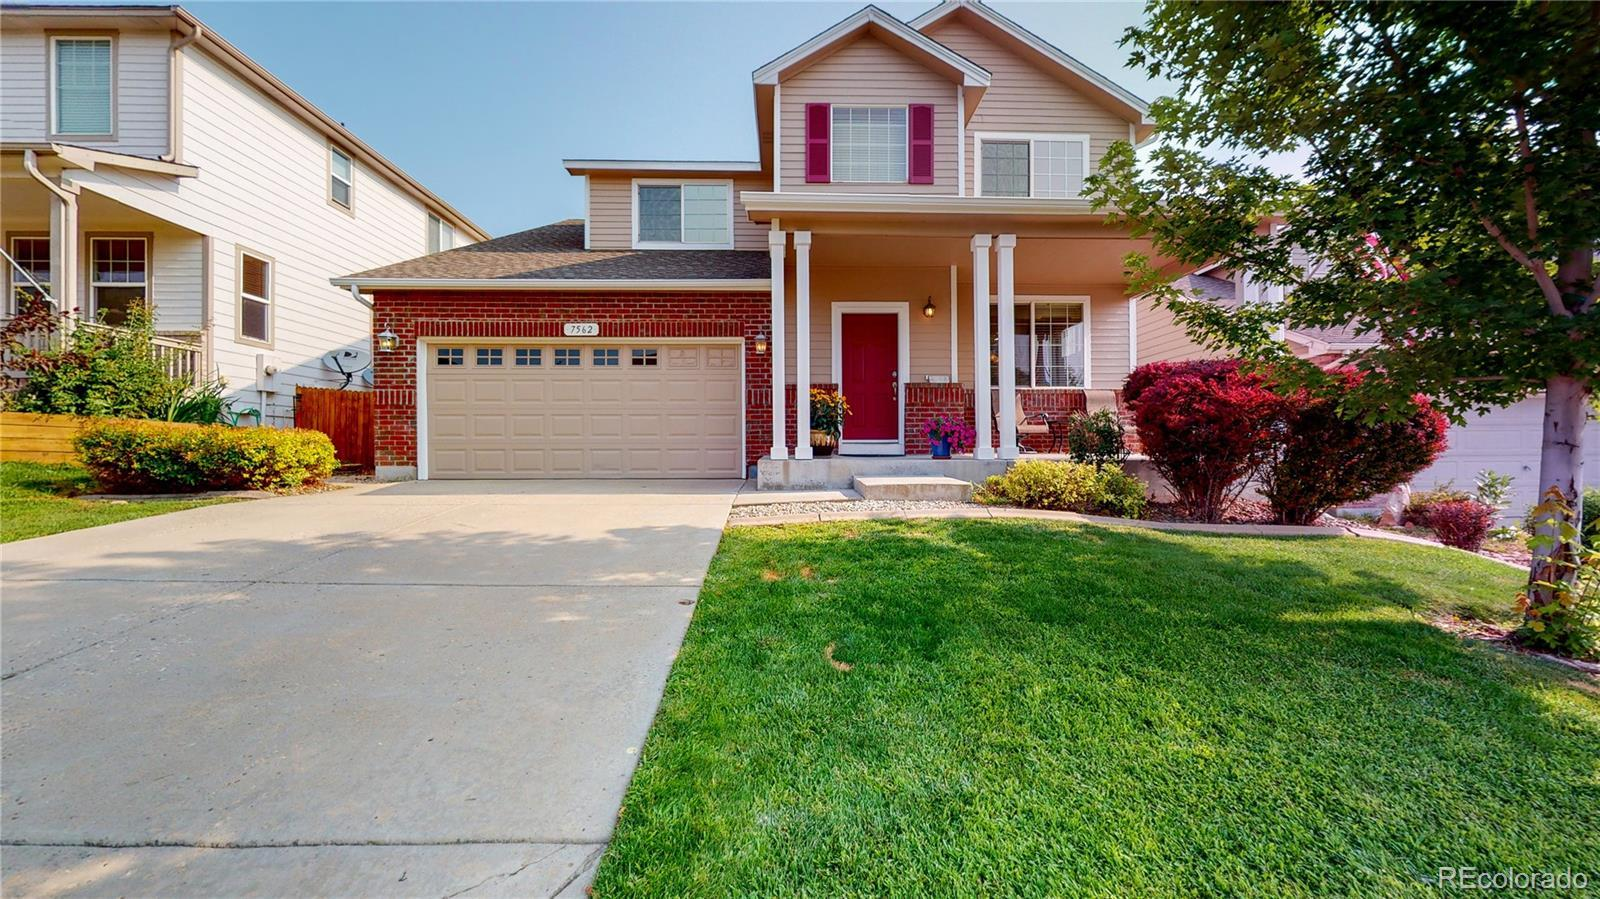 7562 Triangle Drive, Fort Collins, CO 80525 - #: 8375281